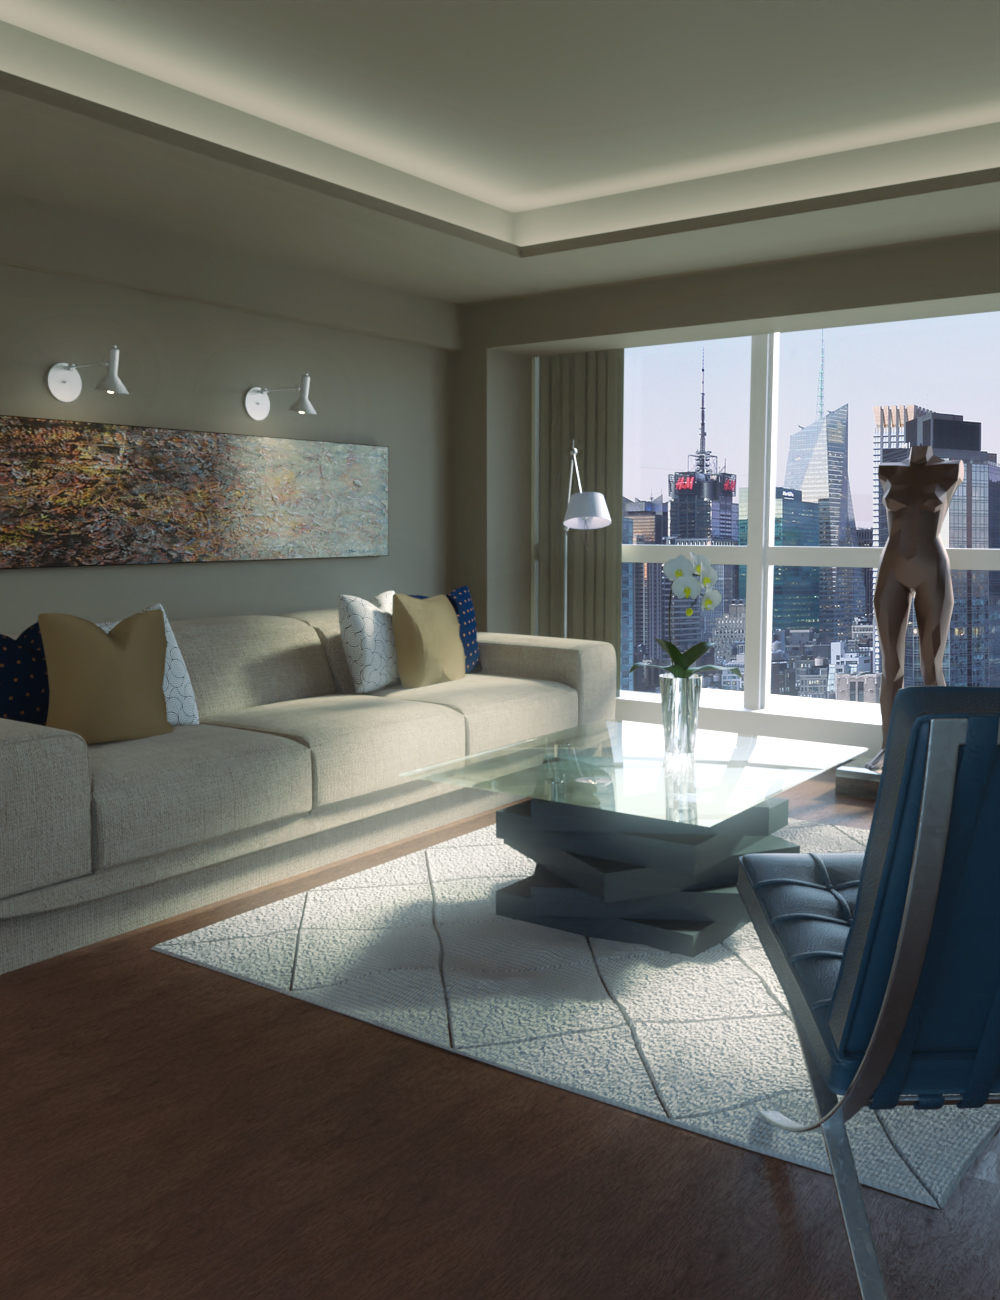 DL Manhattan Loft by: Digitallab3D, 3D Models by Daz 3D